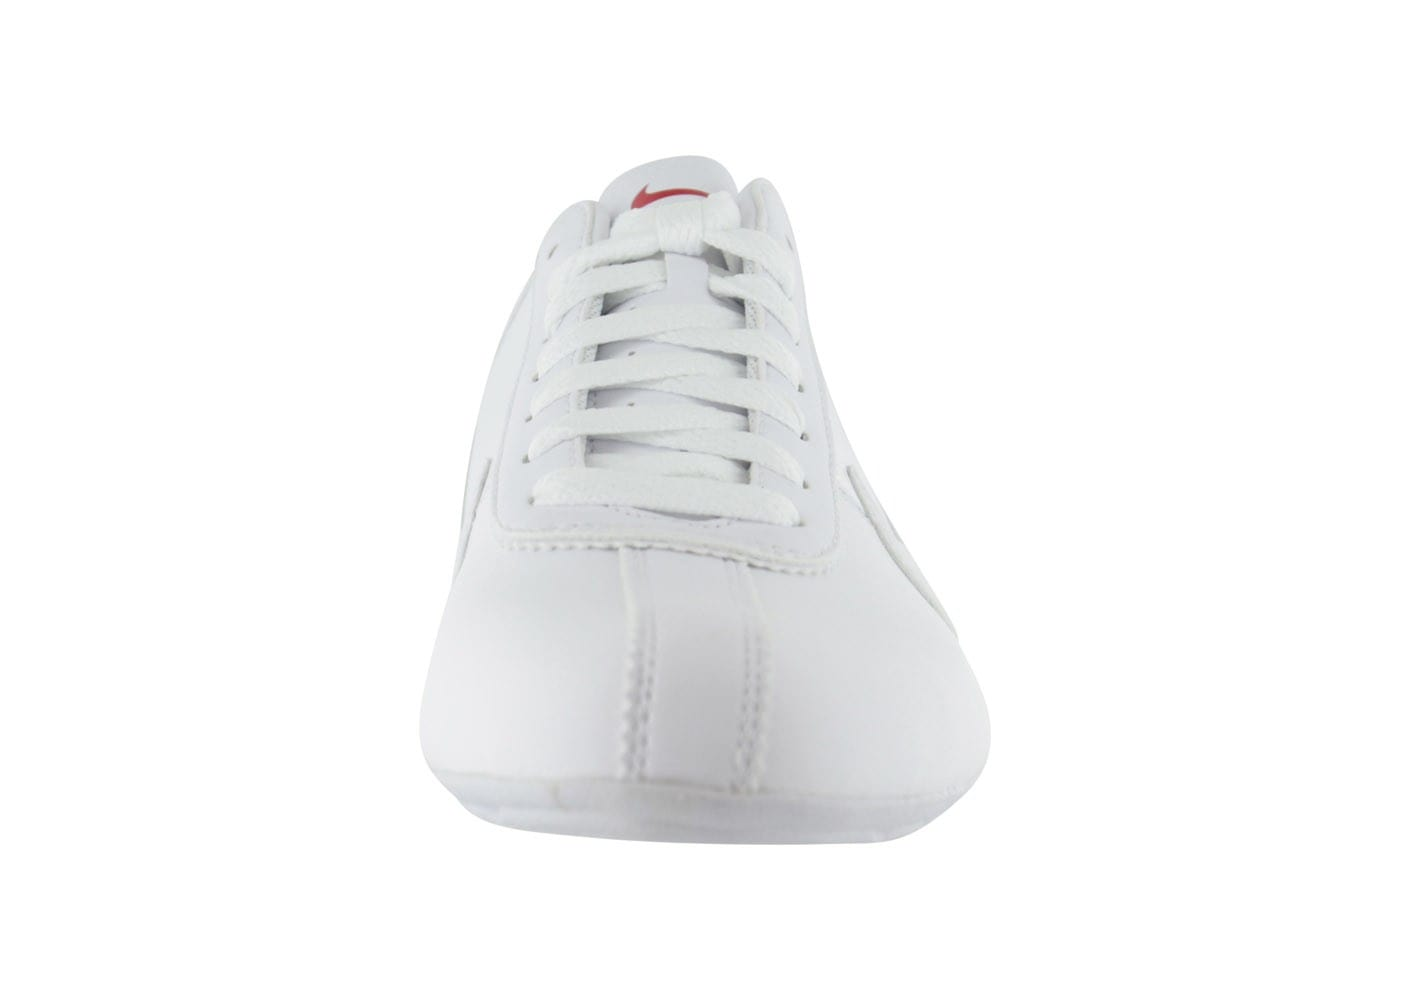 Nike Shox Rivalry Blanche Chaussures Baskets homme Chausport